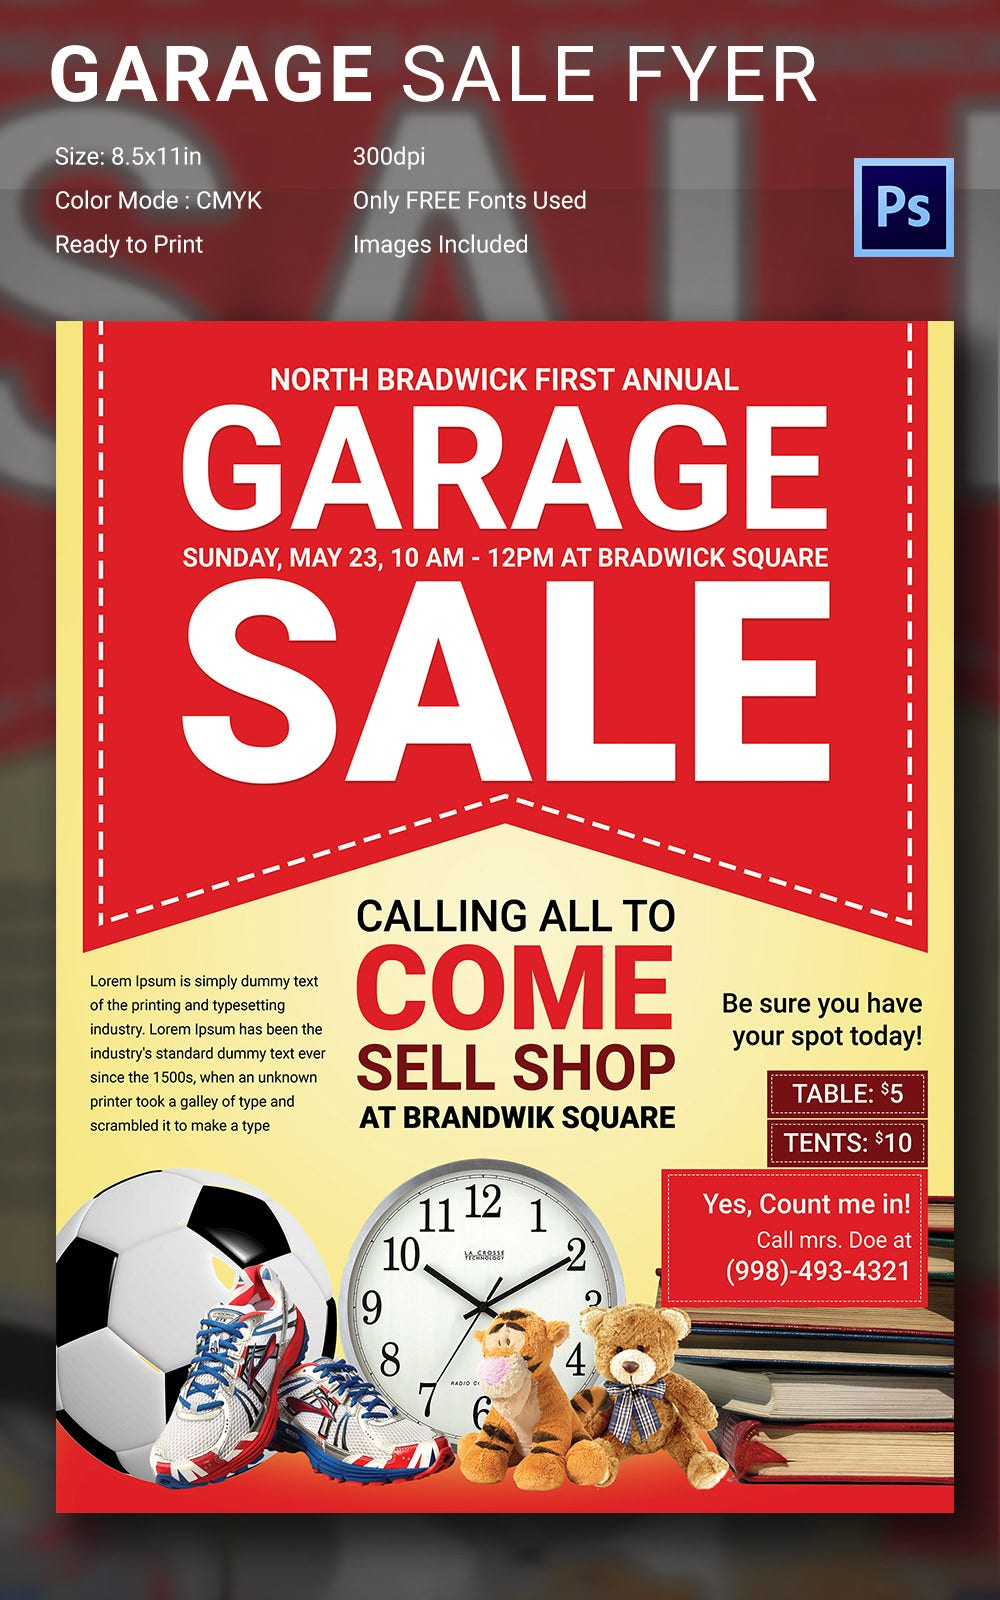 Yard Sale Flyer Template | Garage Sale Flyer